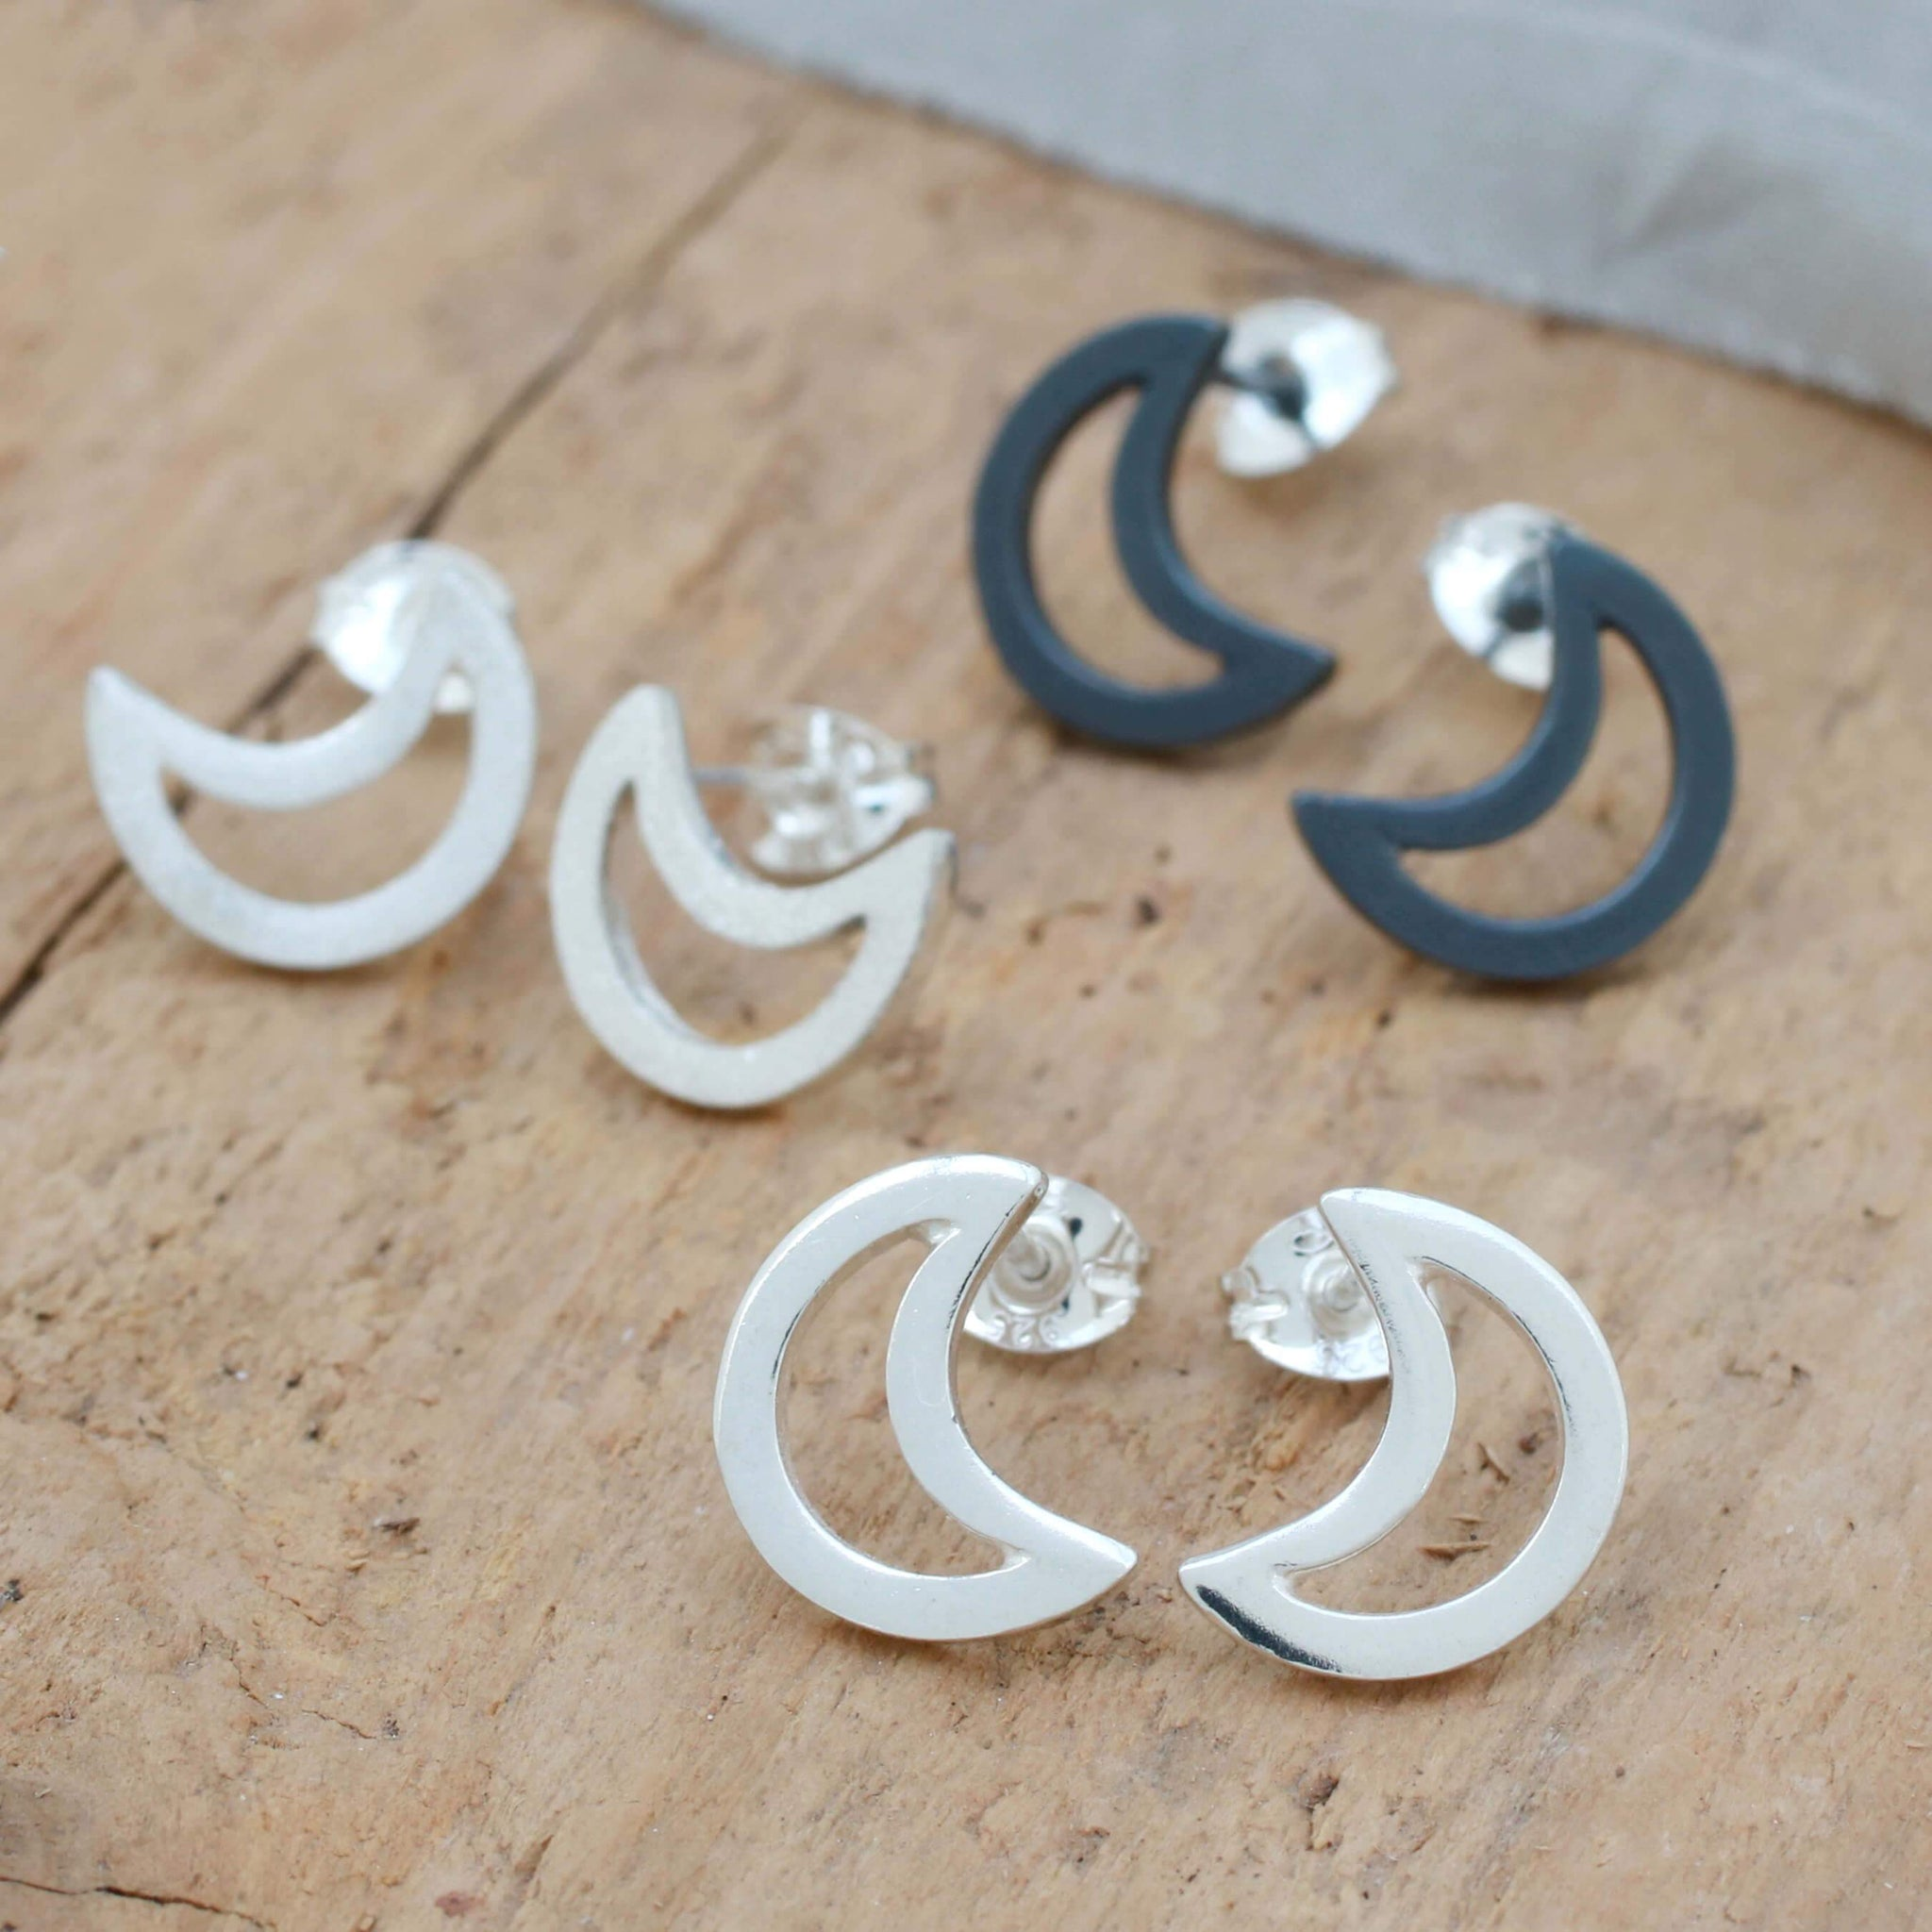 Celestial Jewellery - Moon Stud Earrings